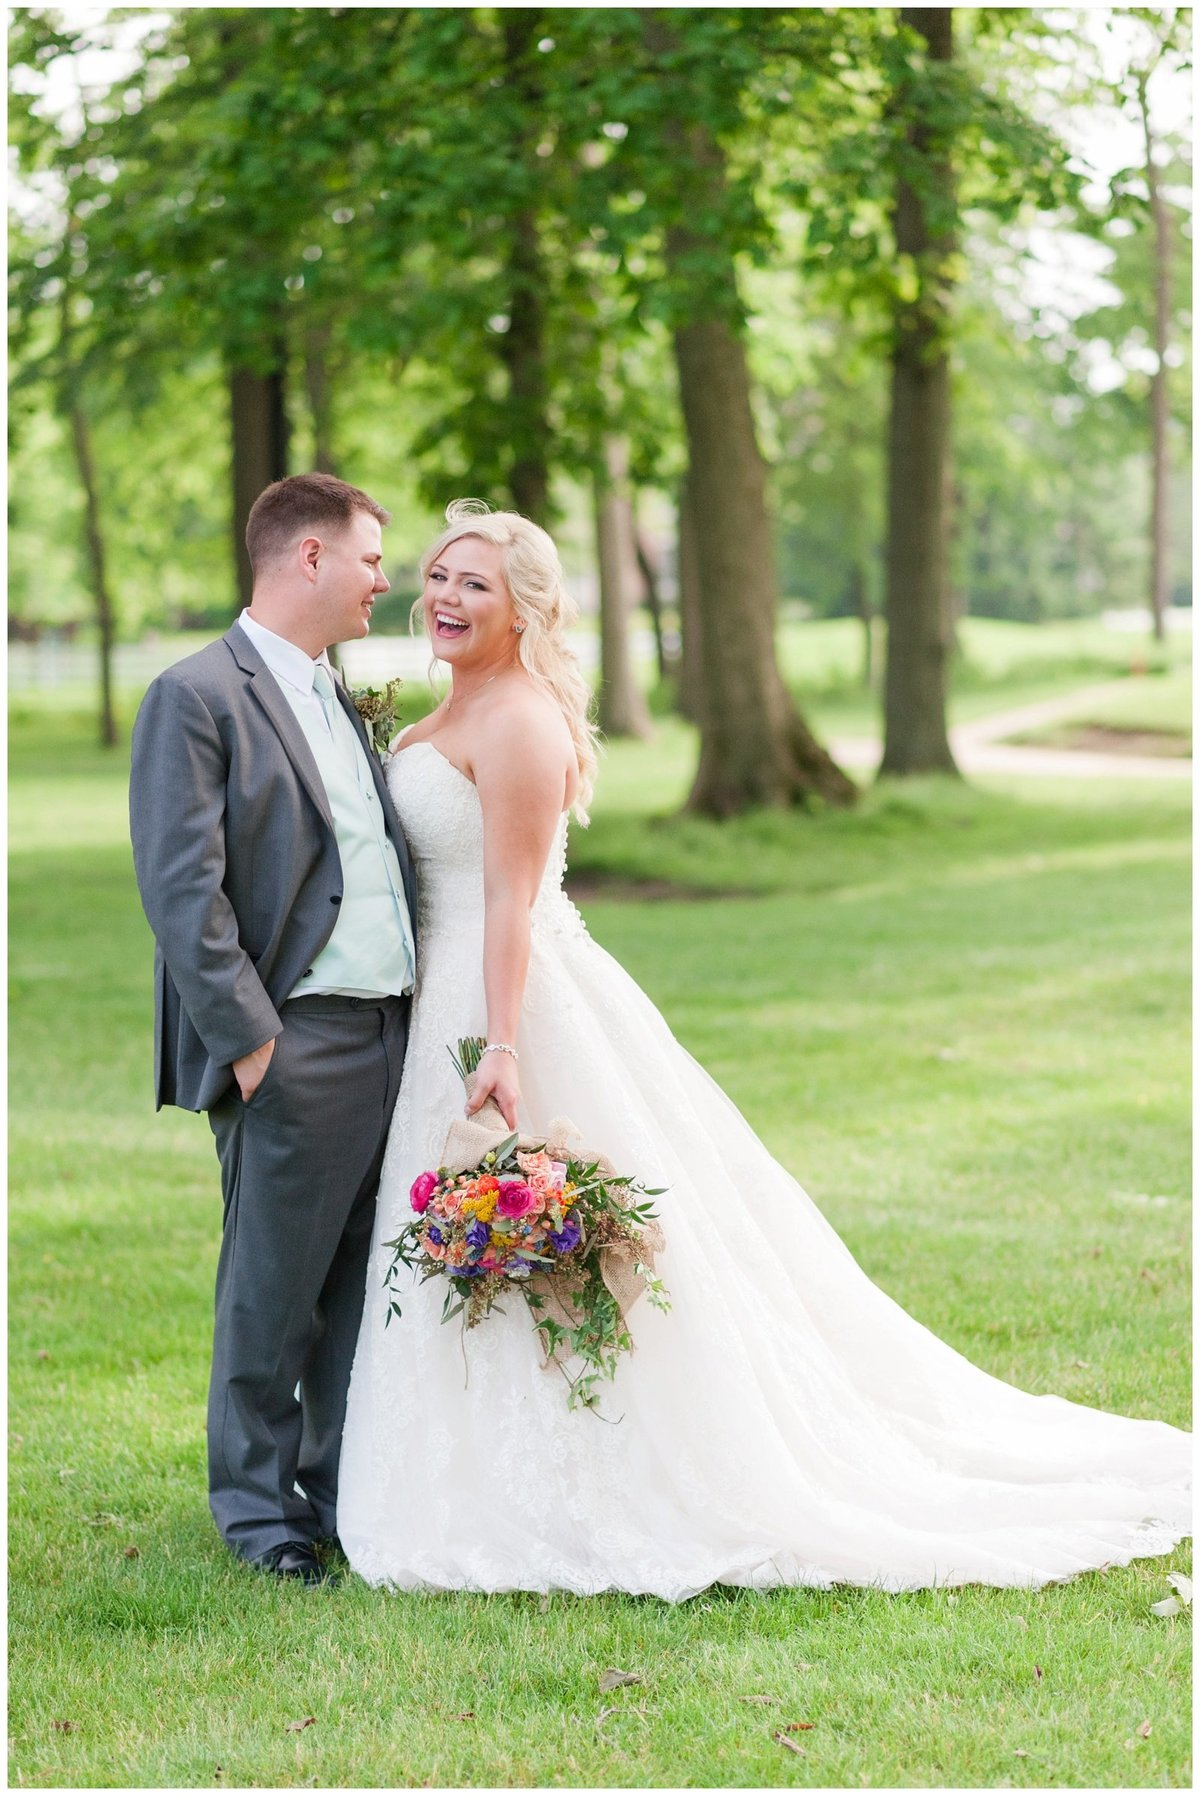 Heritage golf and country club wedding hilliard ohio wedding photos_0049